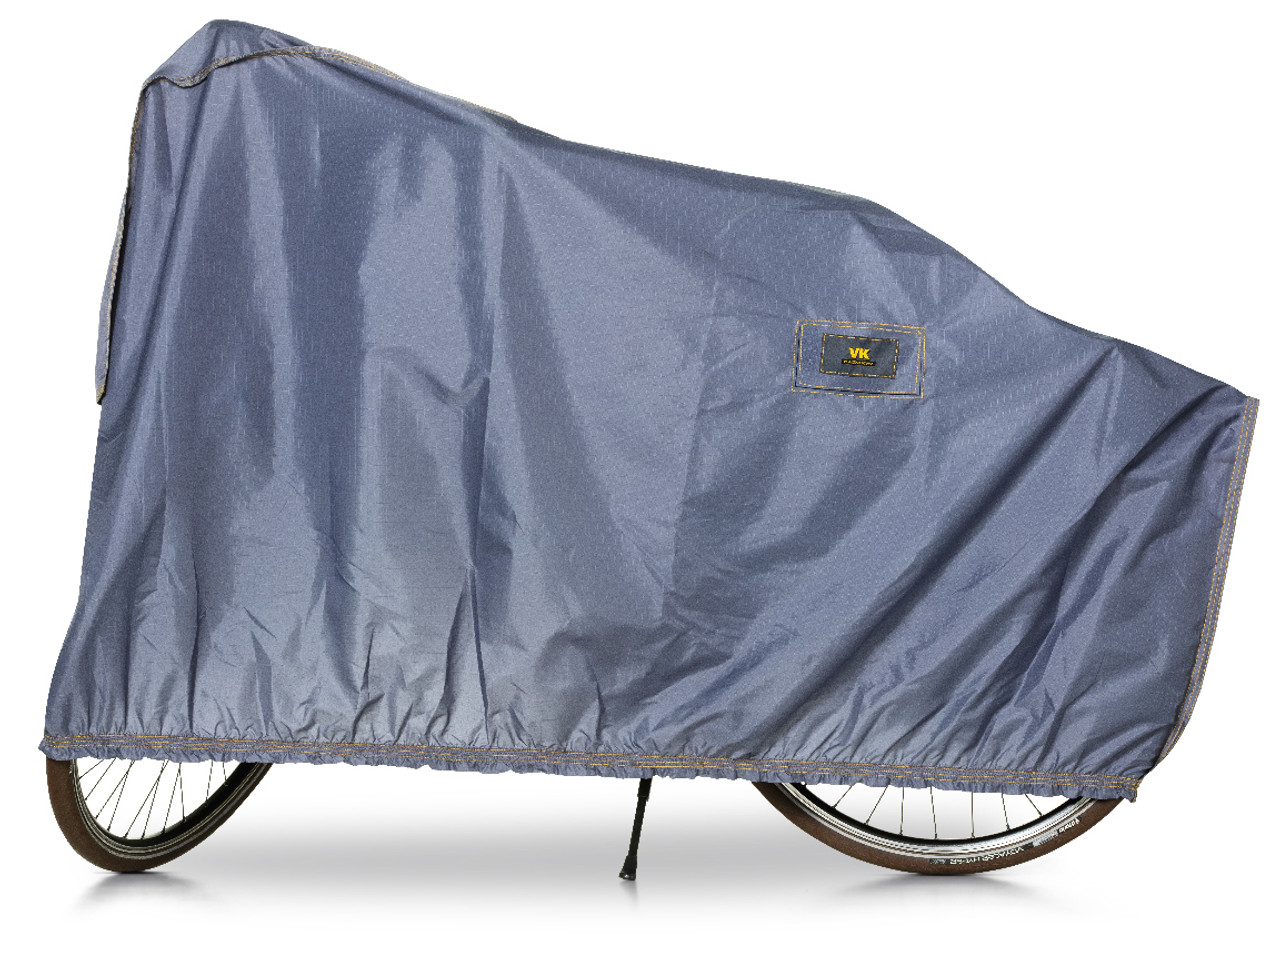 VK E-Bike Showerproof Single Bicycle Cover with Ventilation | Blue/Grey